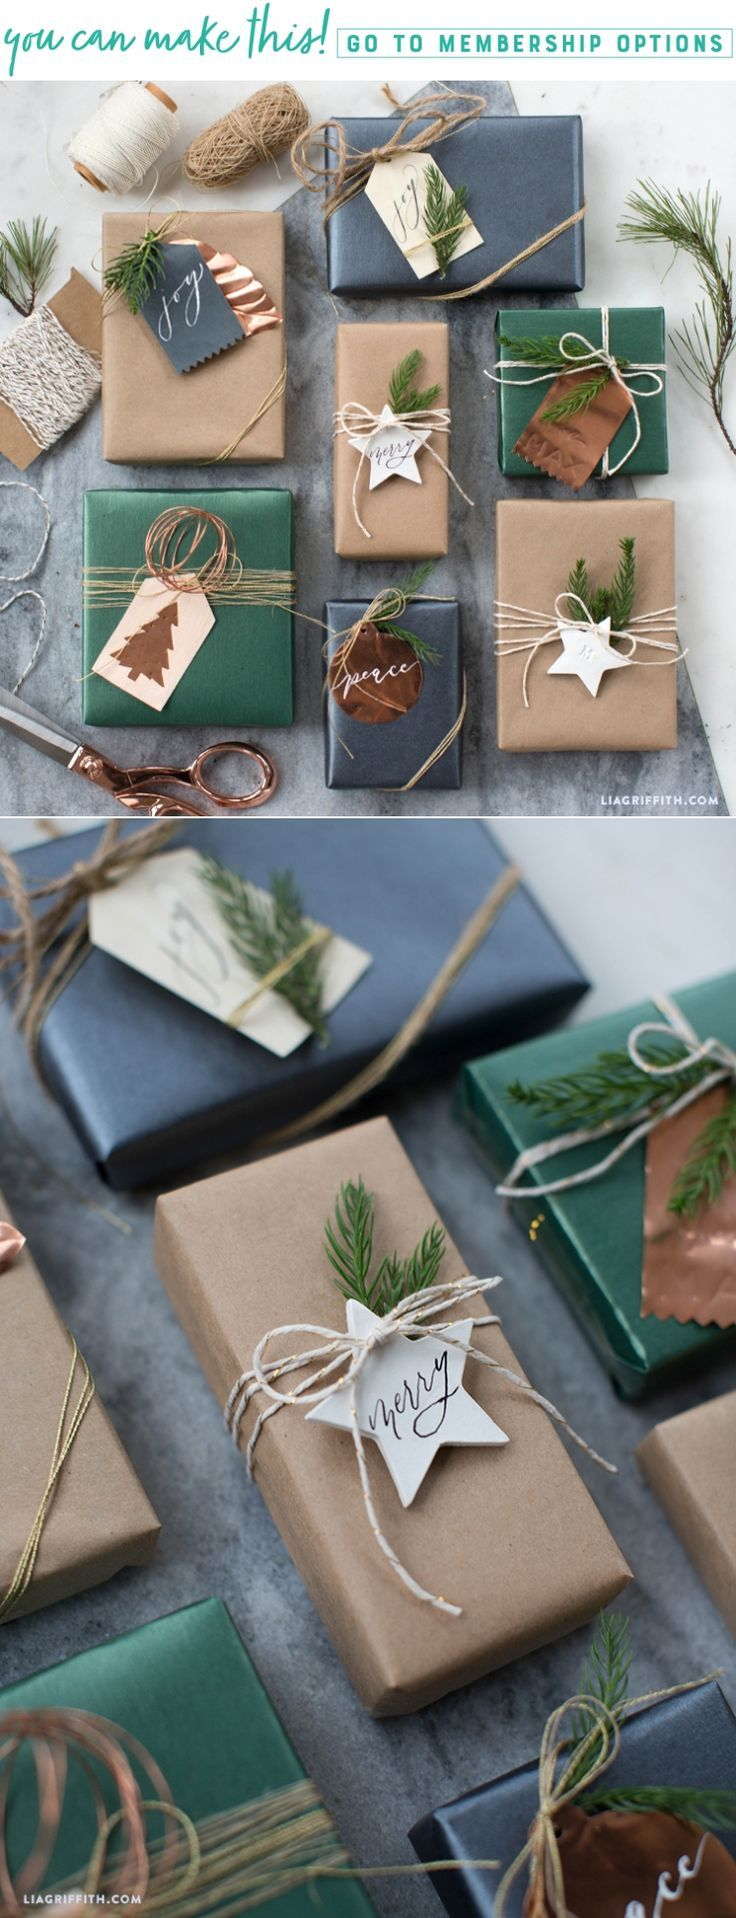 Patterns & Templates for Unique Gift Tags That You Can Make Today - #Gift #Patterns #tags #Templates #Today #Unique #gifts